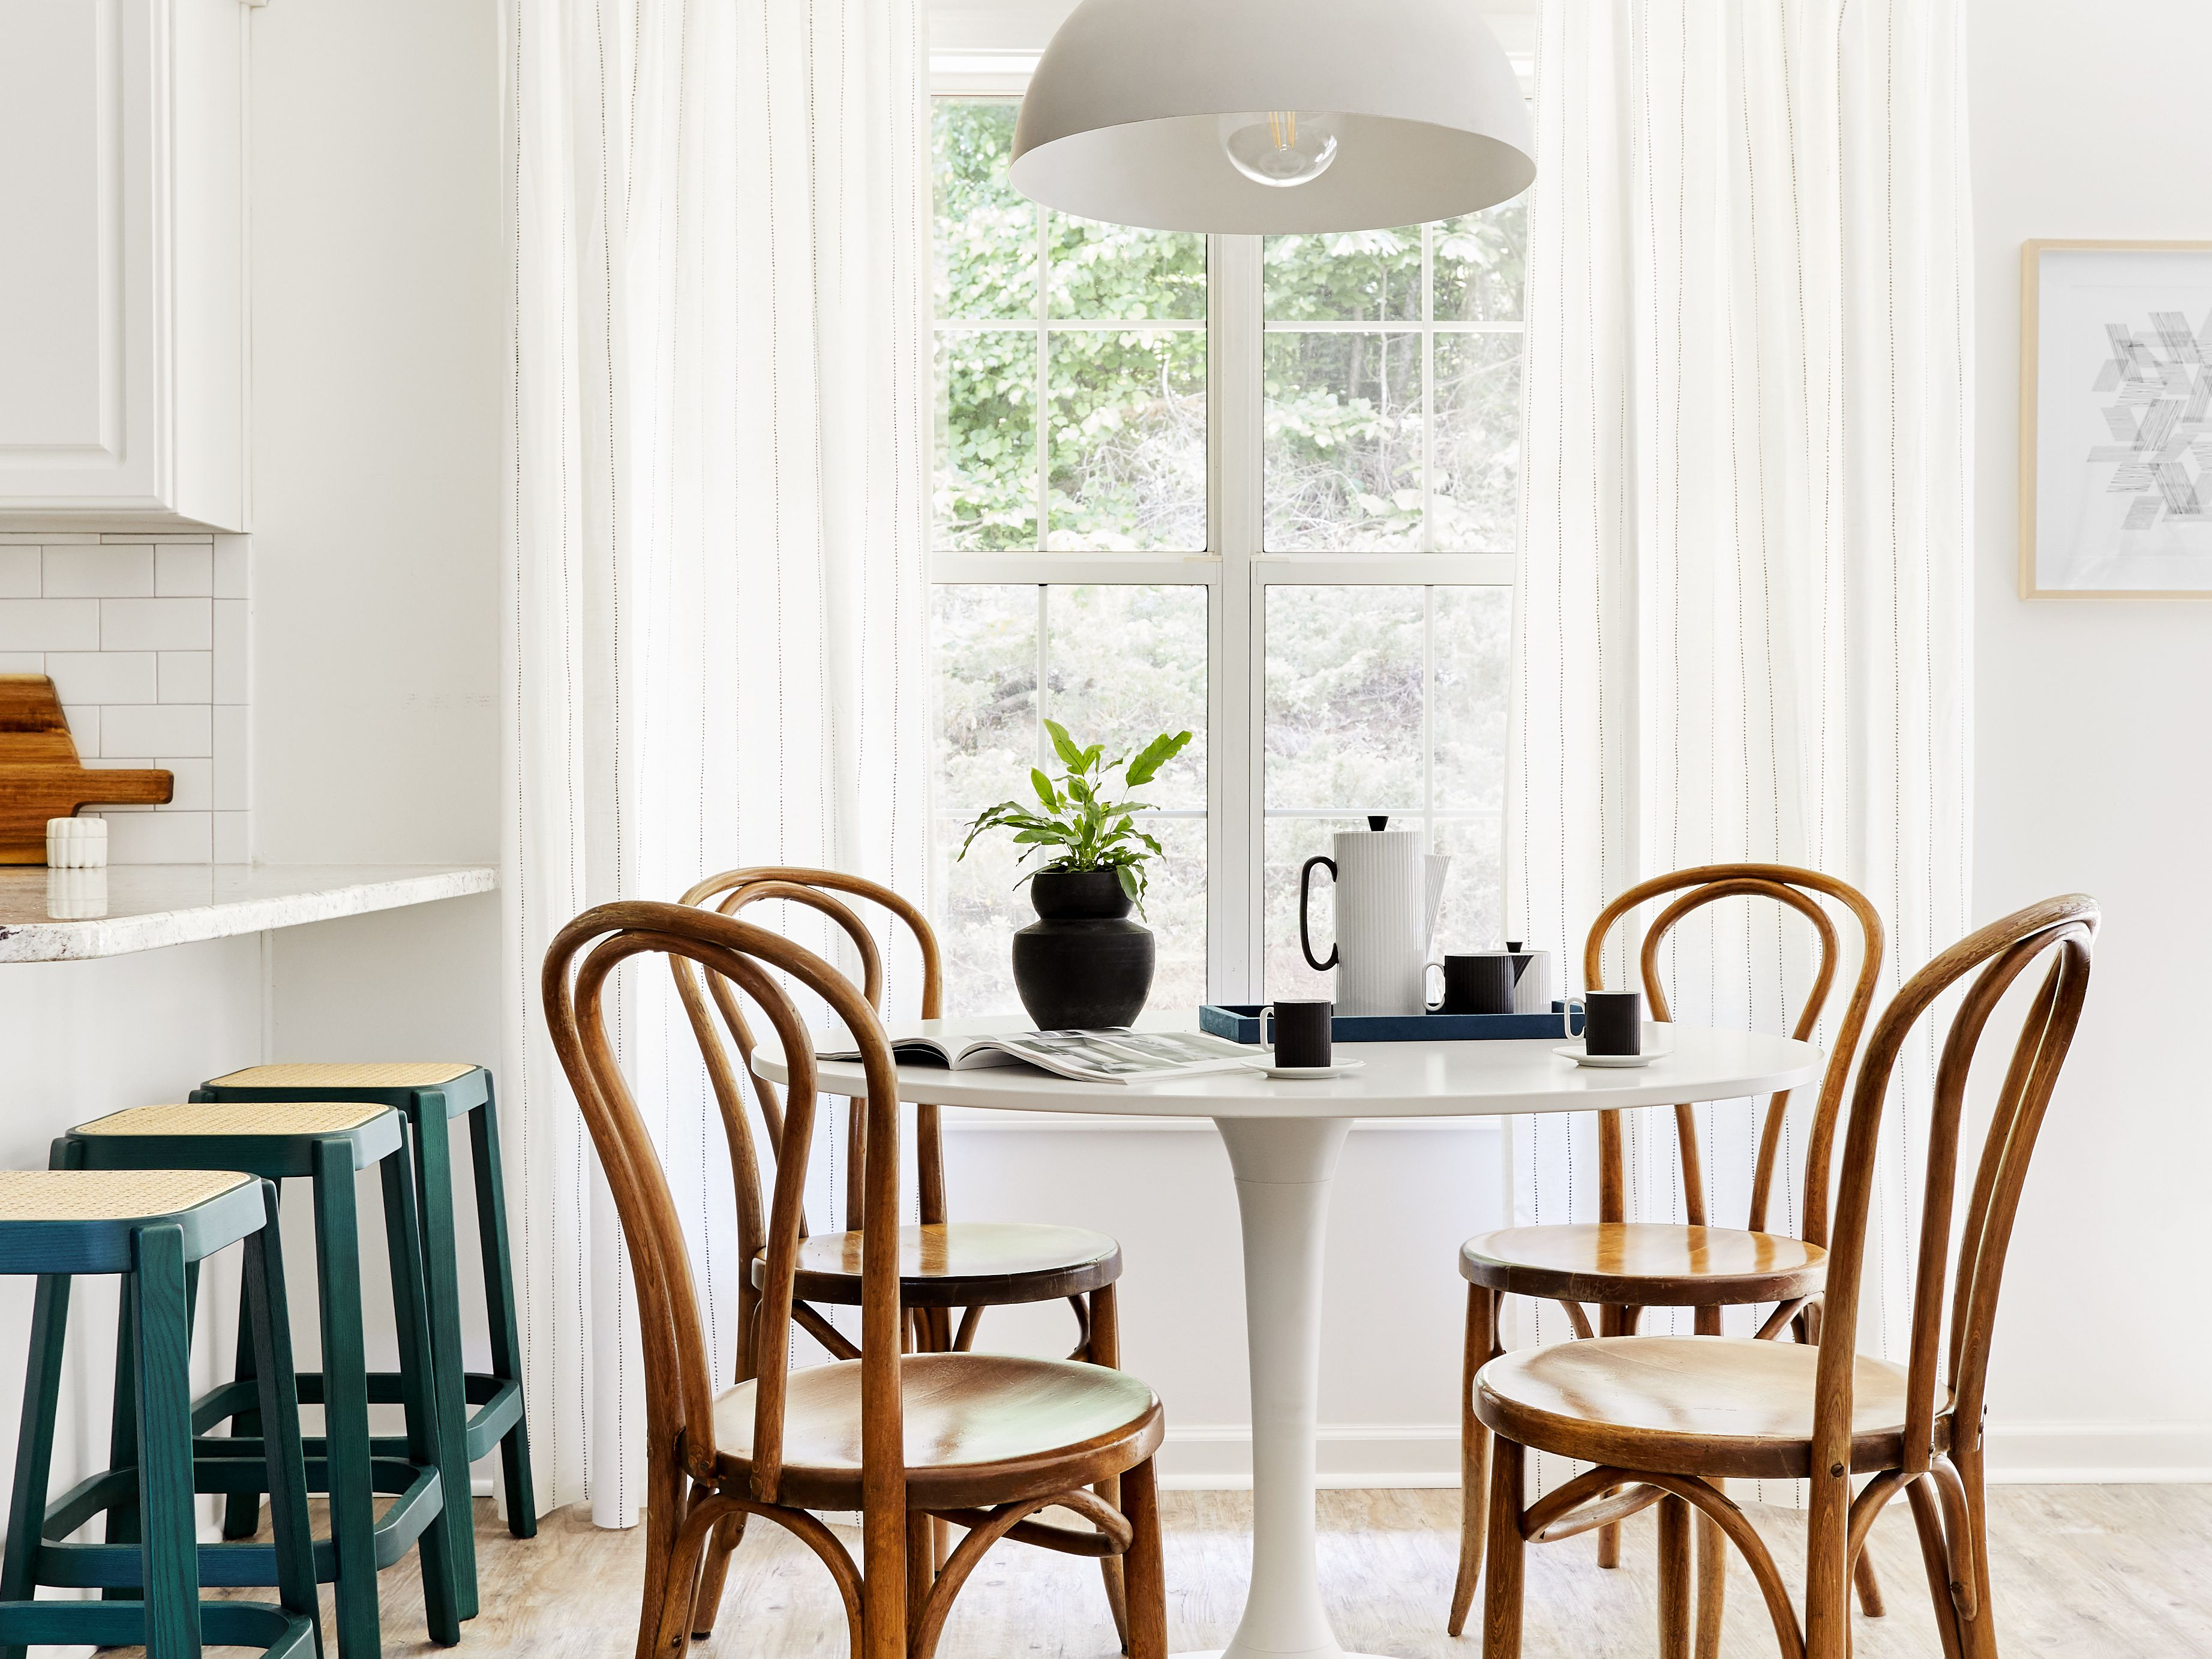 2020 Dining Room Trends What Design, Formal Dining Room Ideas 2020